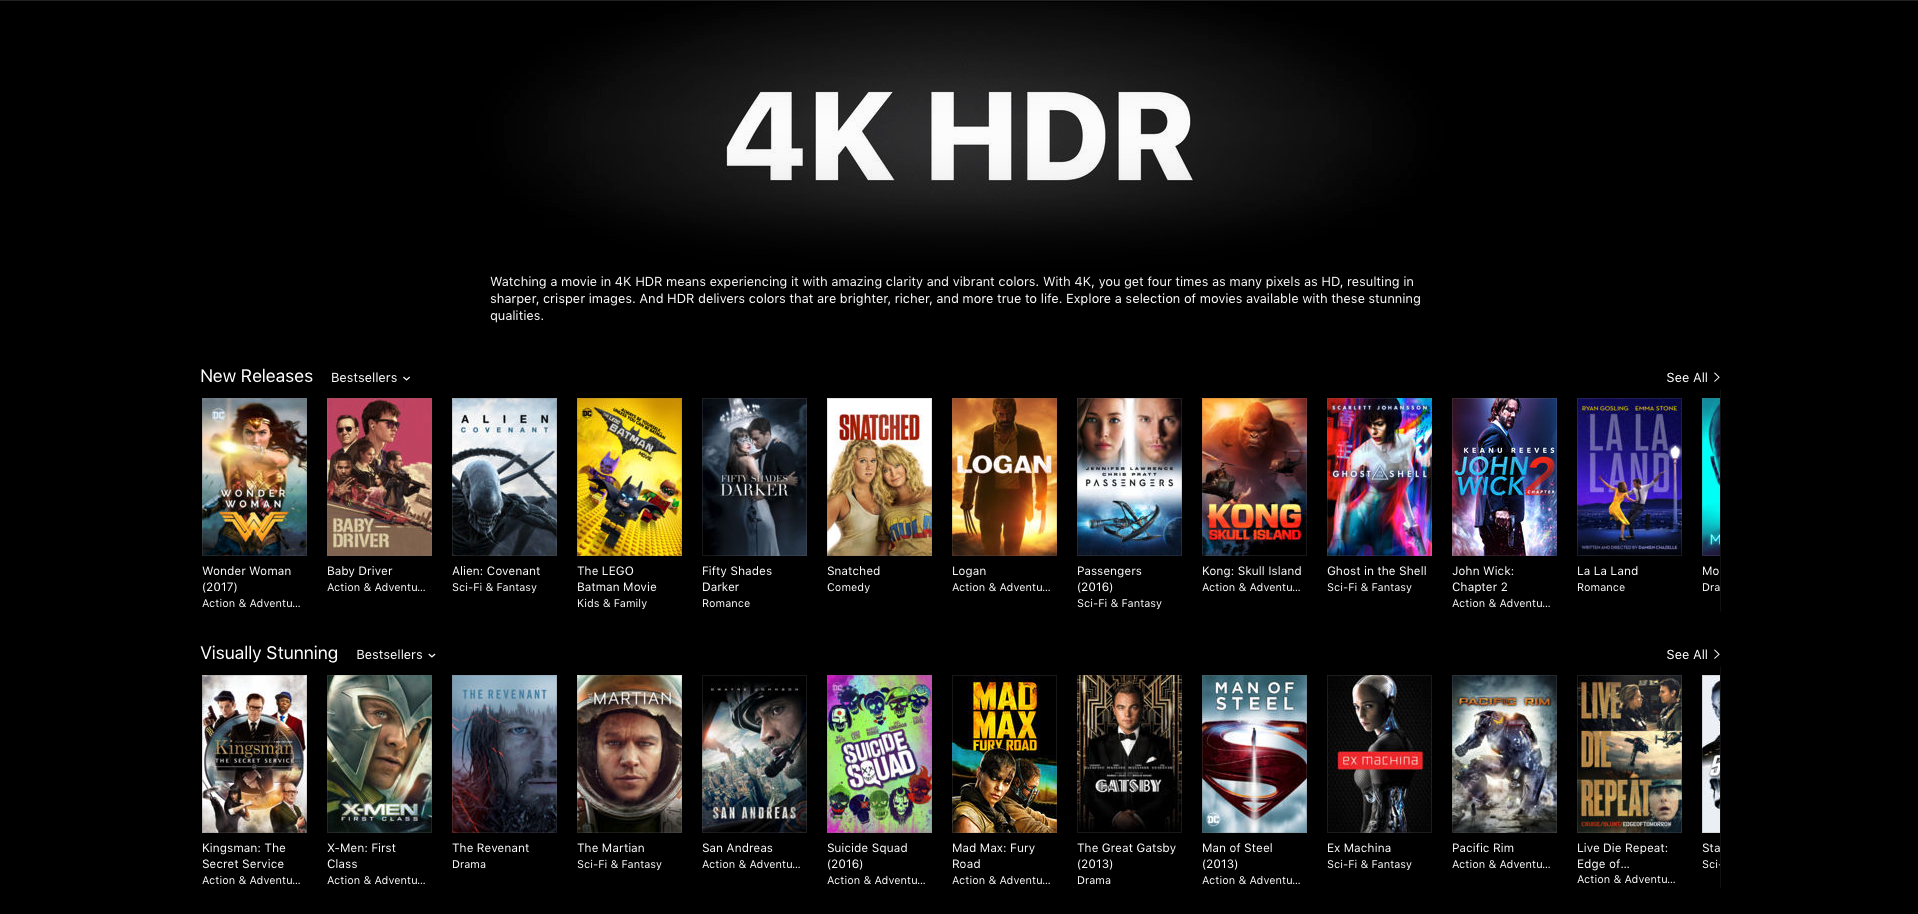 Apple only allows streaming, not downloading, of upgraded 4K movies